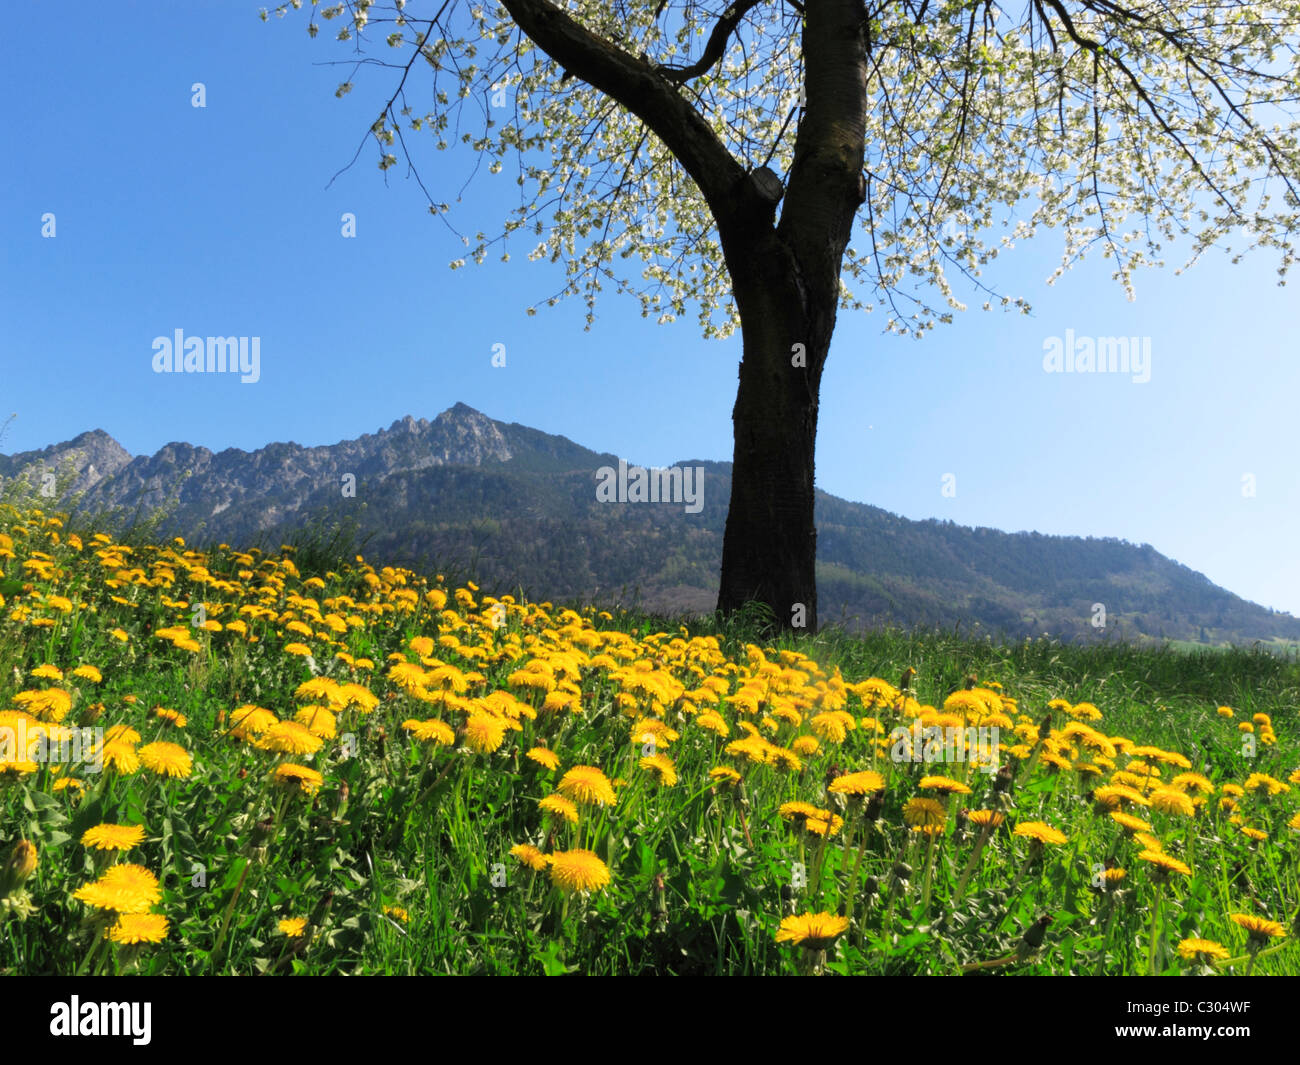 The Three Sisters mountain range framed by a sea of yellow flowers, Liechtenstein FL Stock Photo